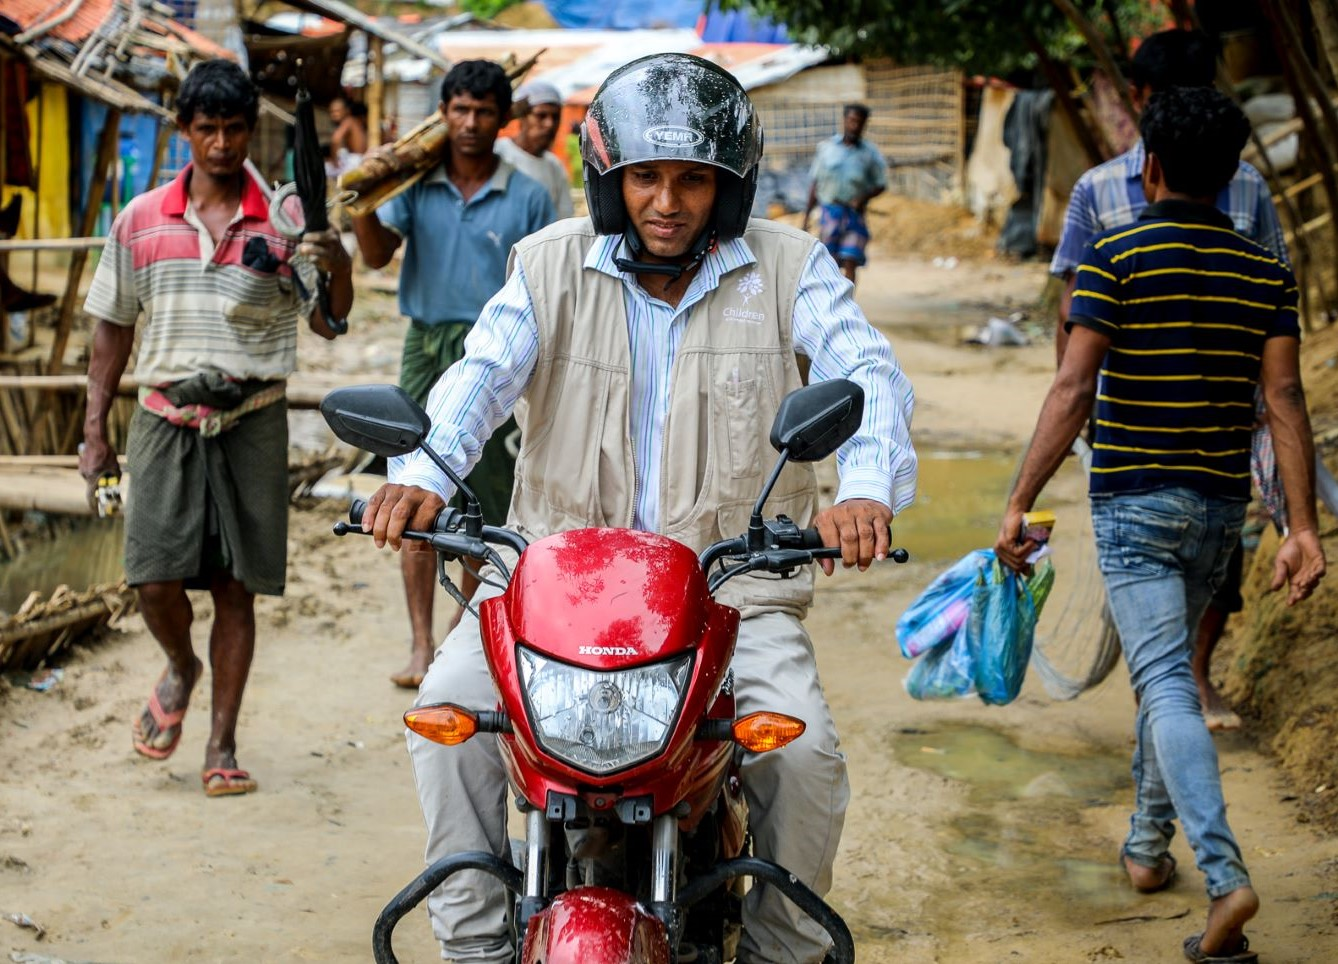 Motorcycles for Overseas Programs